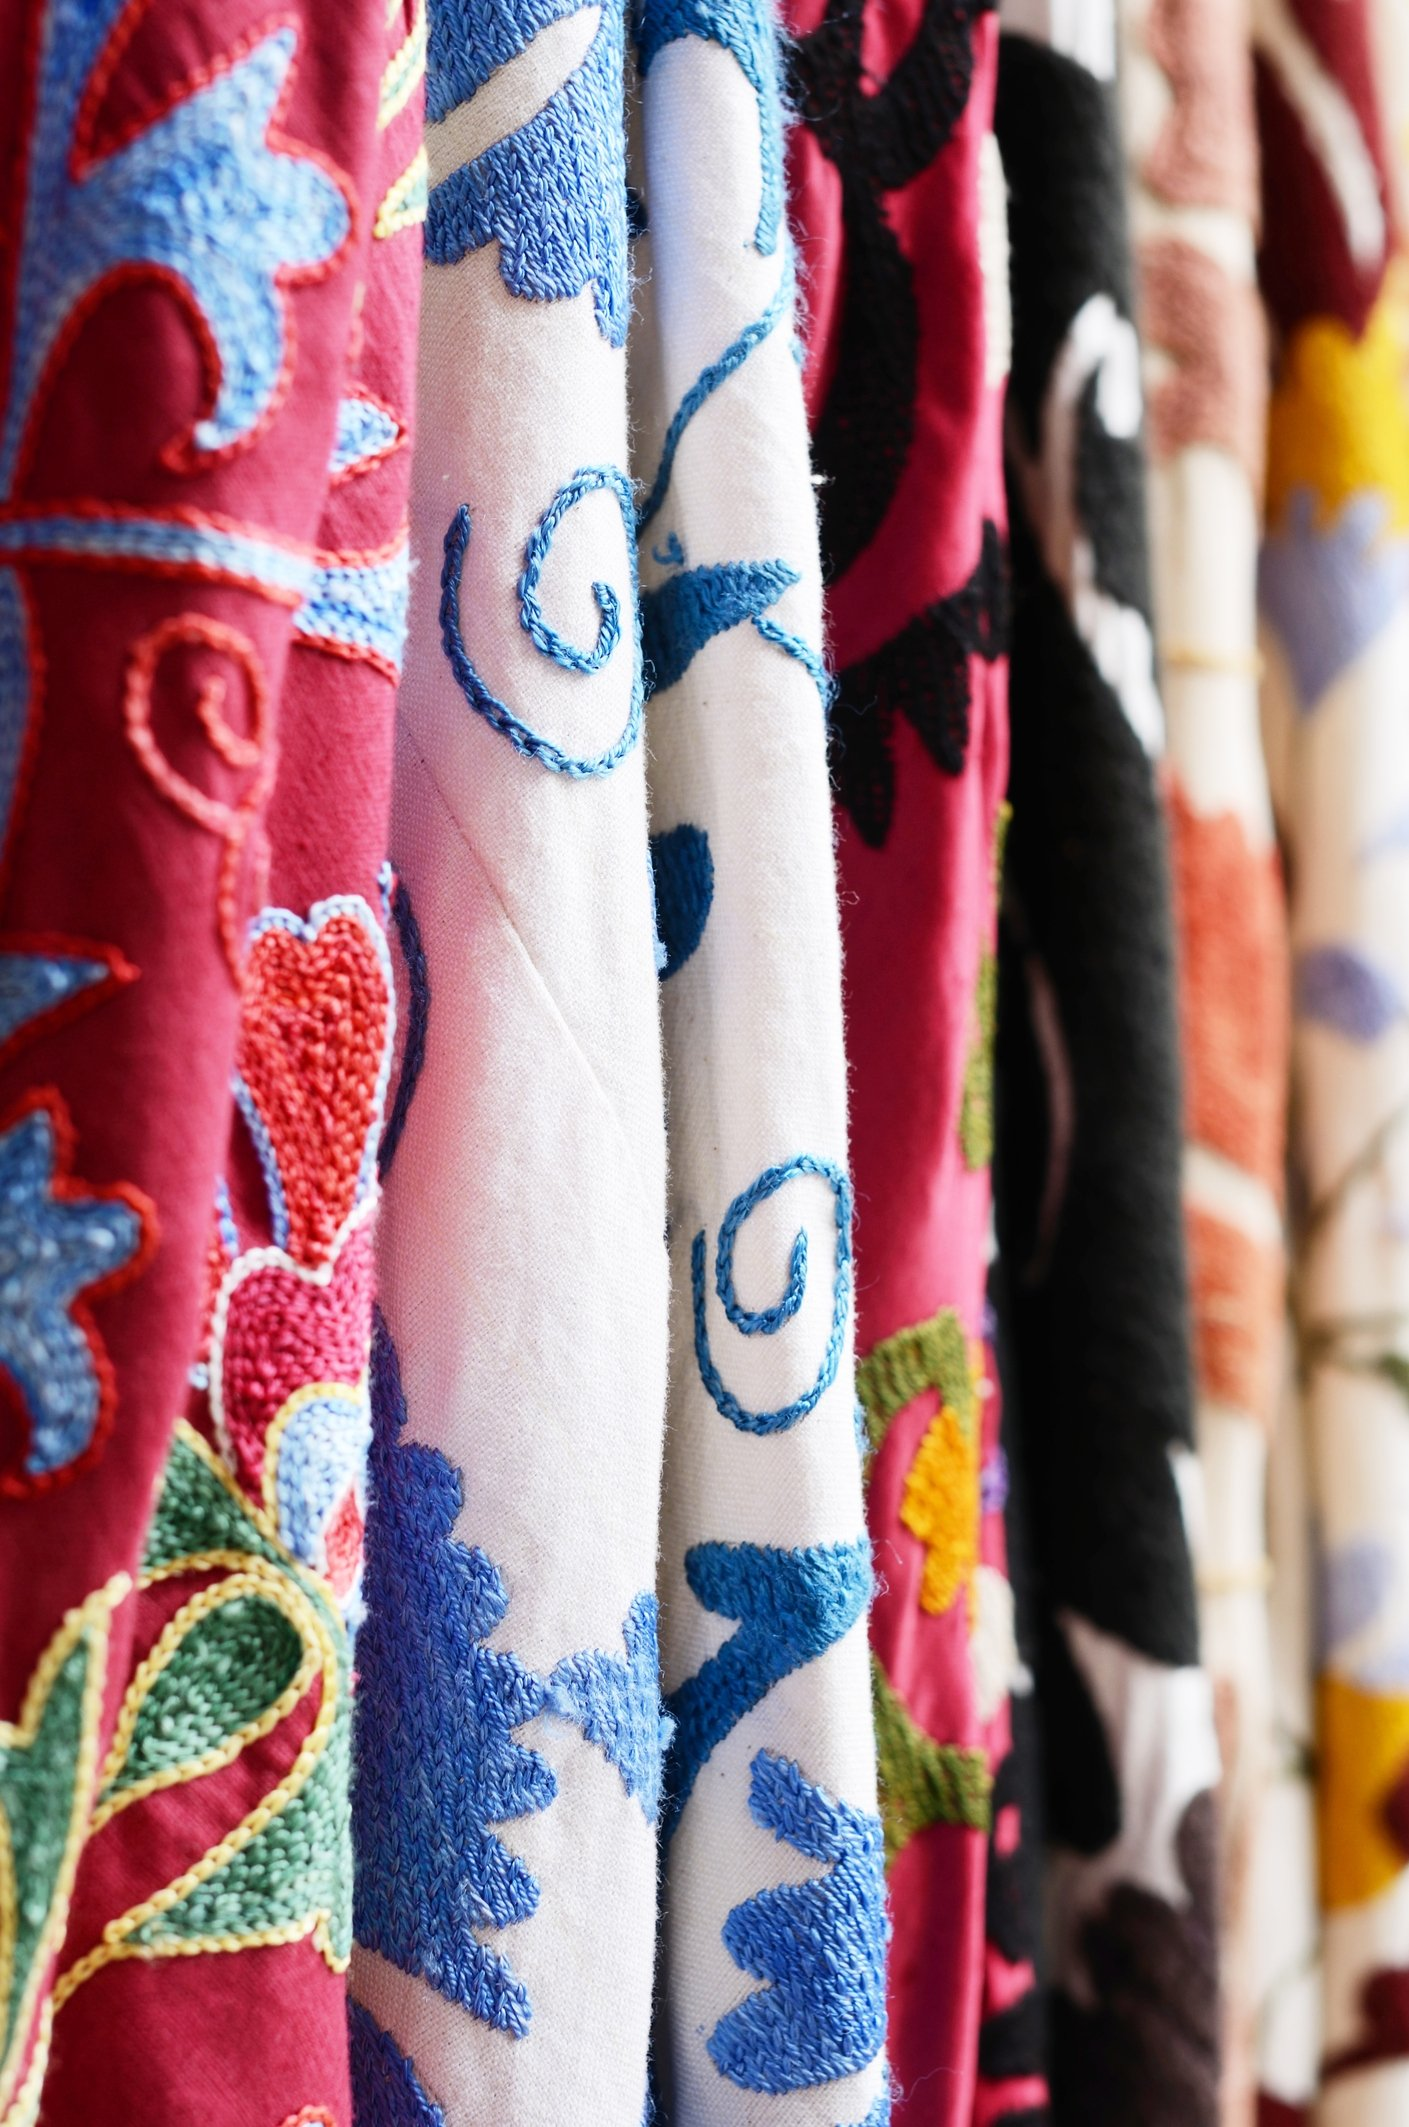 Traditional suzani embroidered fabrics hanging at a bazaar. (iStock Photo)